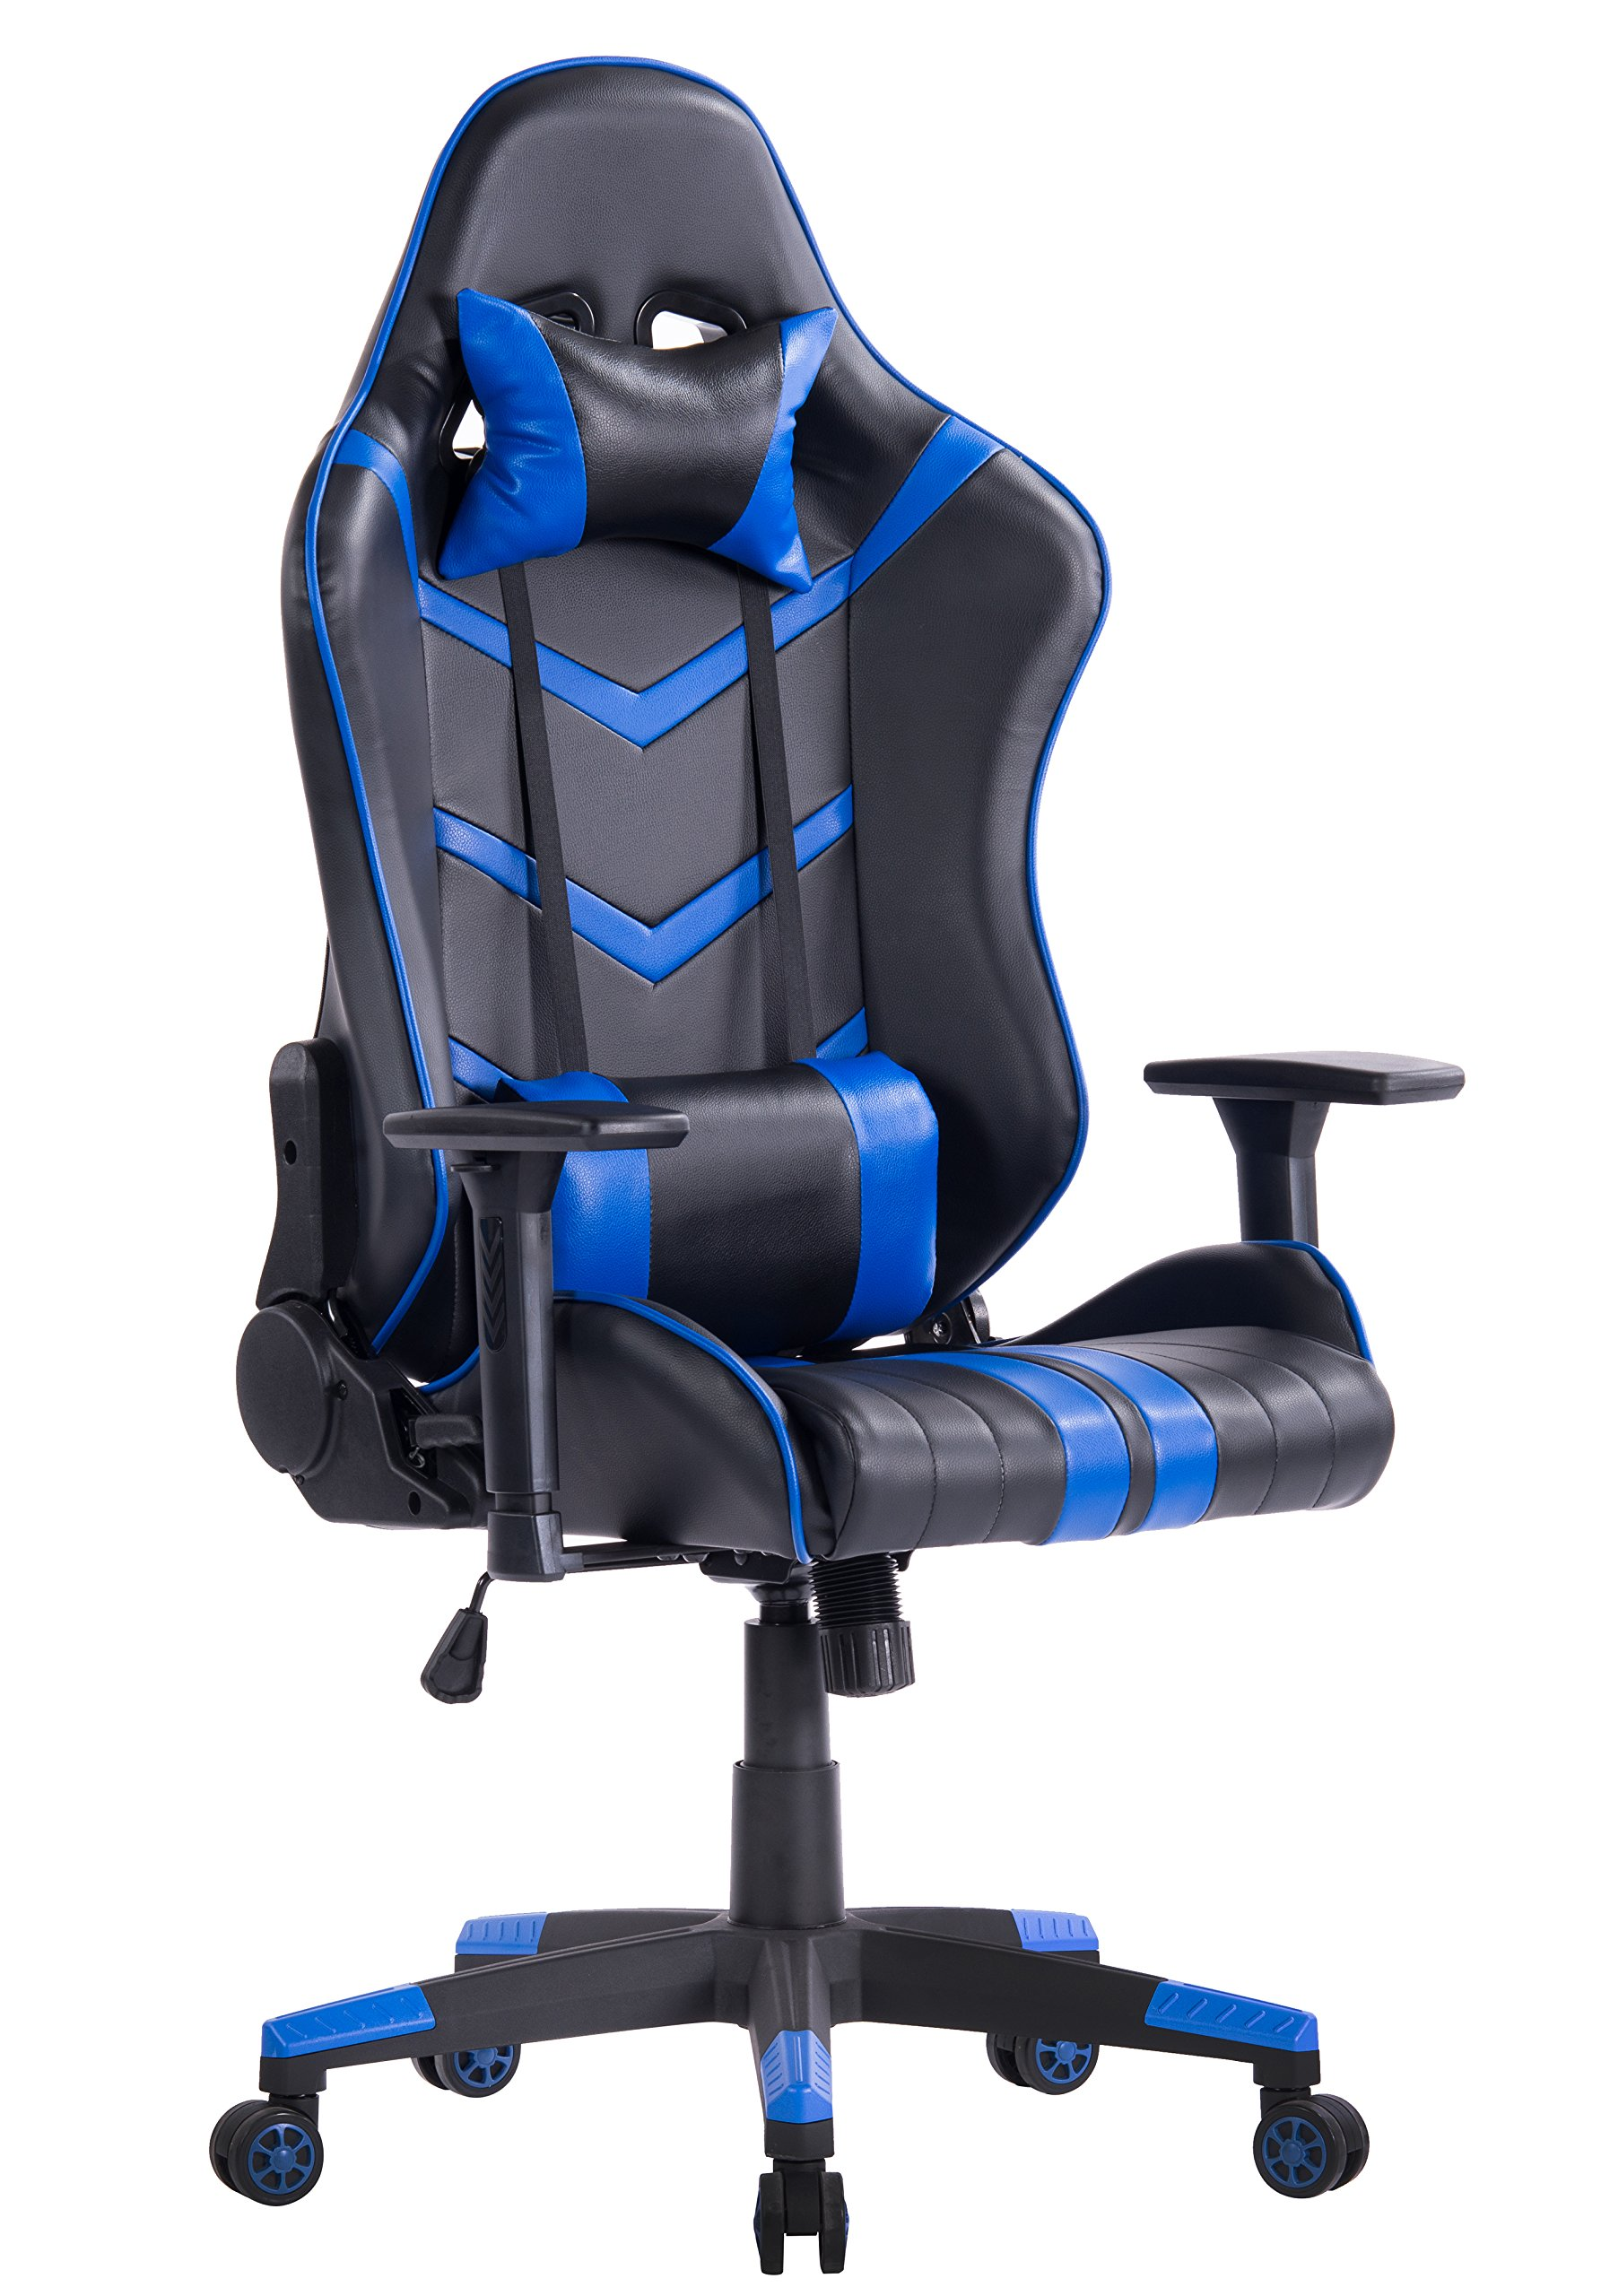 KILLABEE Racing Style Gaming Chair - Big & Tall 400lb Multifunctional High-Back Leather E-Sports Computer Chair Ergonomic Executive Office Chair with Adjustable Headrest Lumbar Support (Blue&Black)